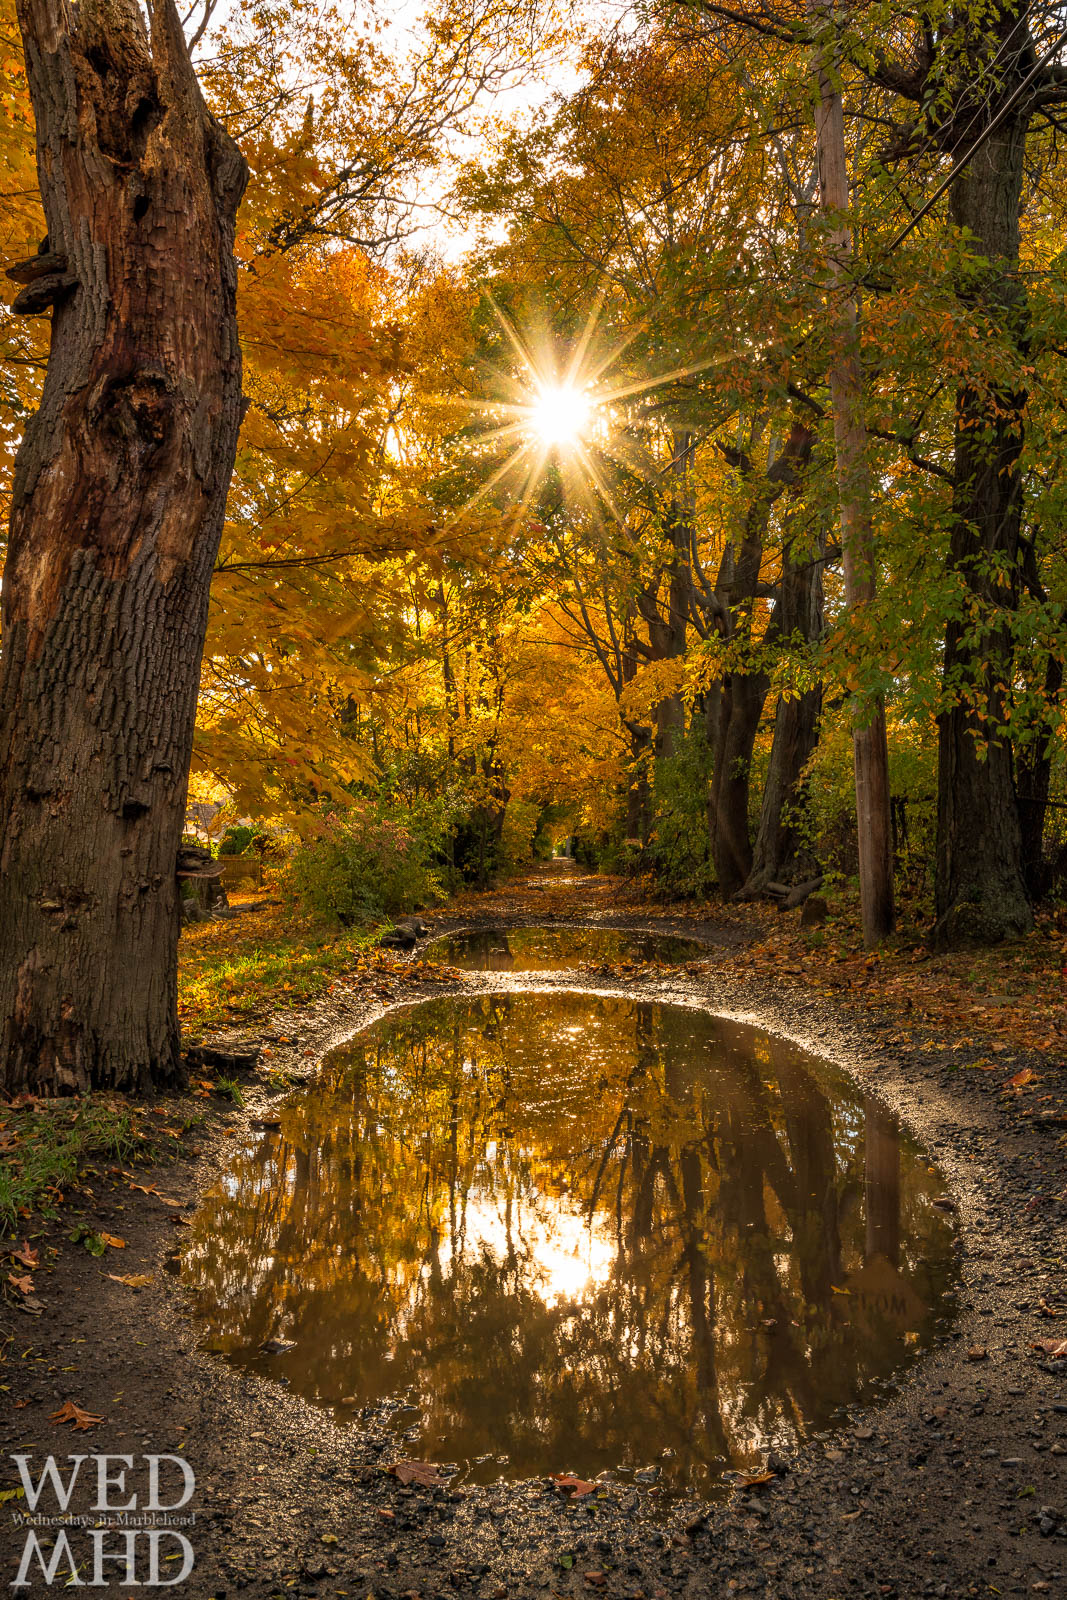 Sunlight beams over Ware Lane with peak foliage bathing the dirt road in golden light reflected in a puddle of rainwater